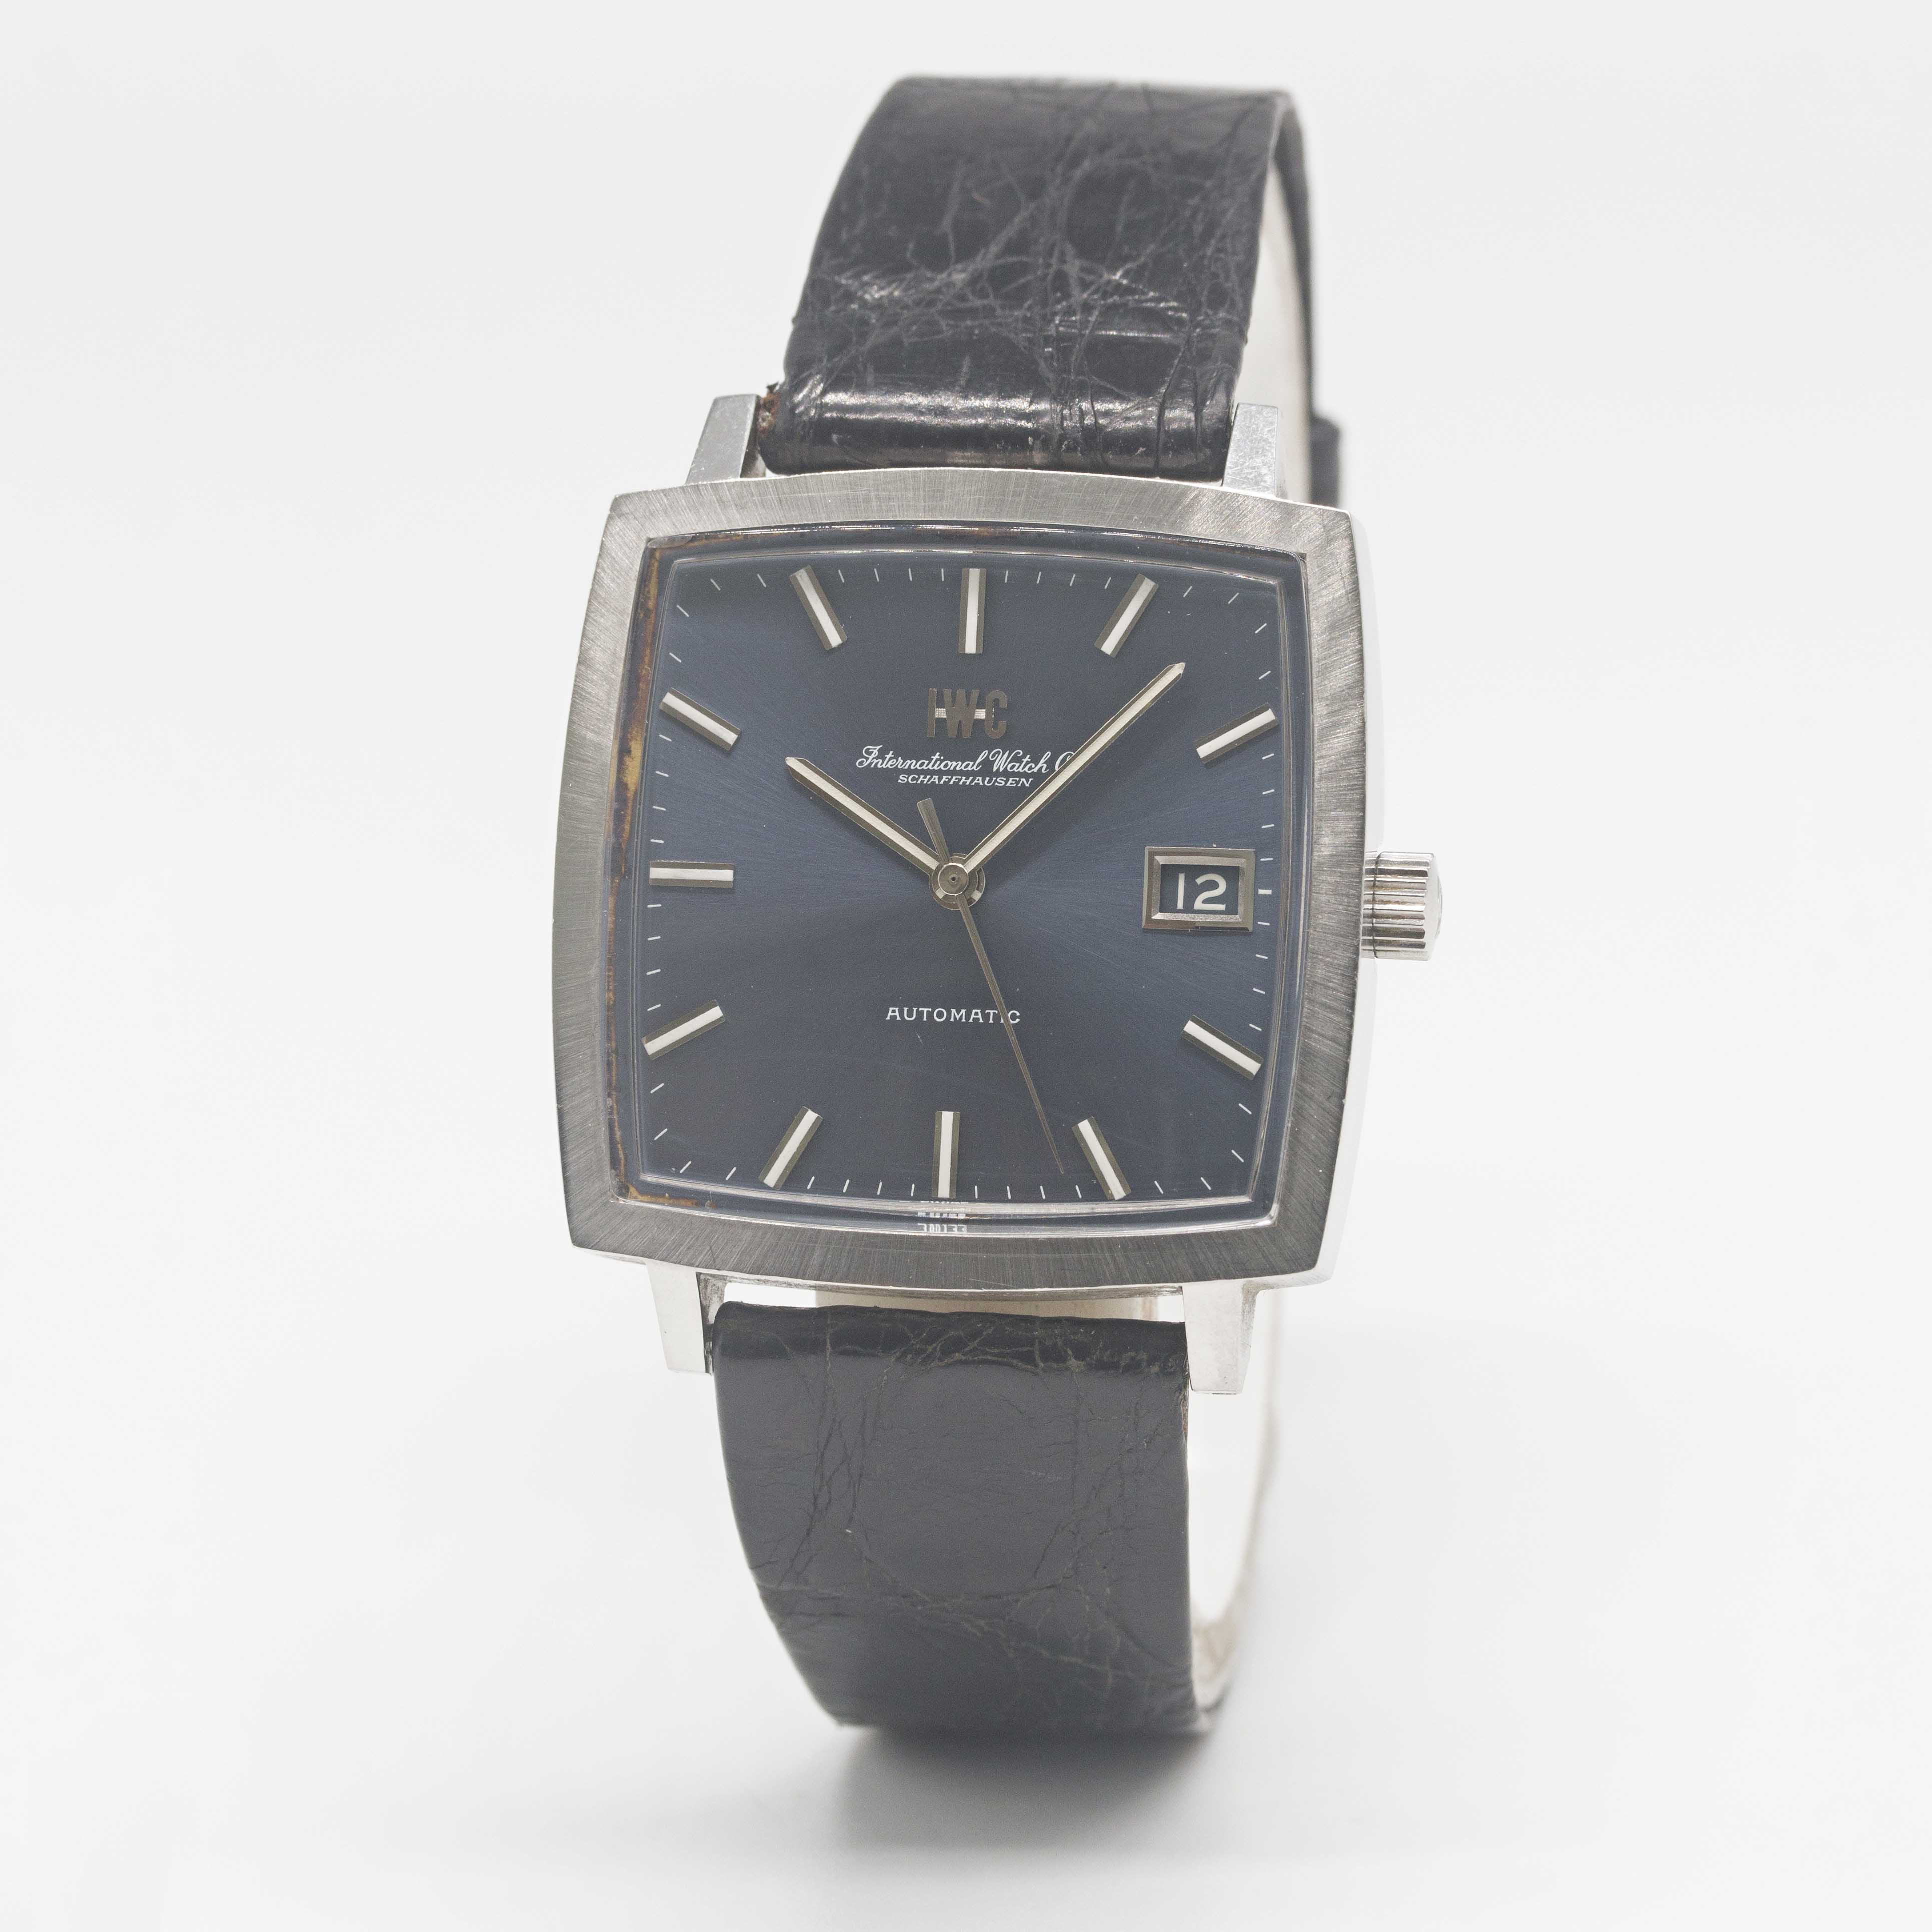 """Lot 10 - A GENTLEMAN'S STAINLESS STEEL IWC """"TV"""" AUTOMATIC WRIST WATCH CIRCA 1970s, REF. 1871 WITH SUNBURST"""